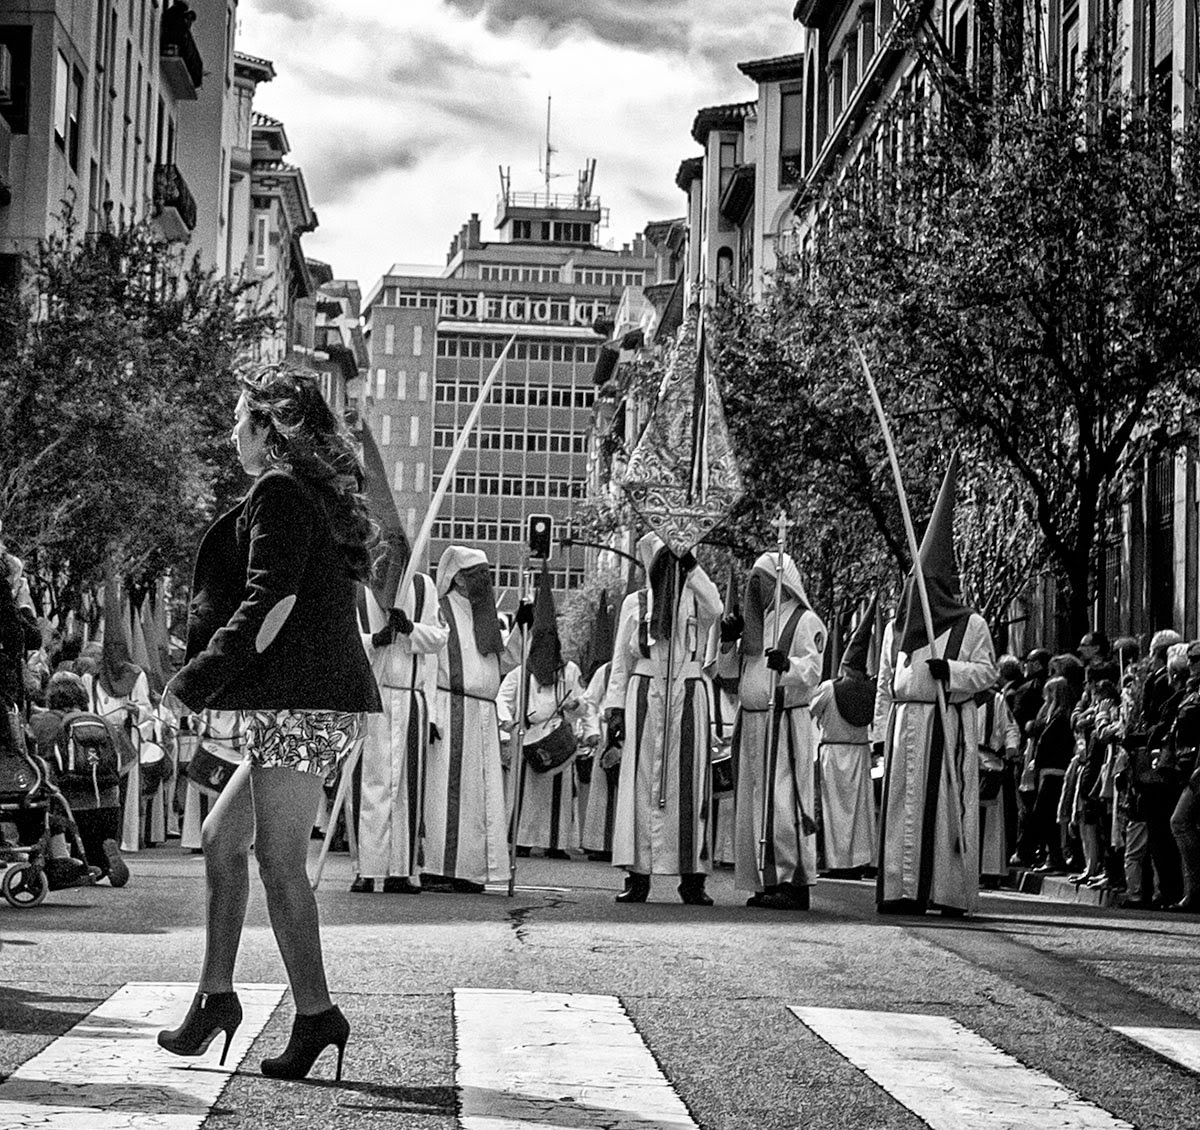 Semana Santa Zaragoza 2015 - Holy Week Spain - Street Photo B&N